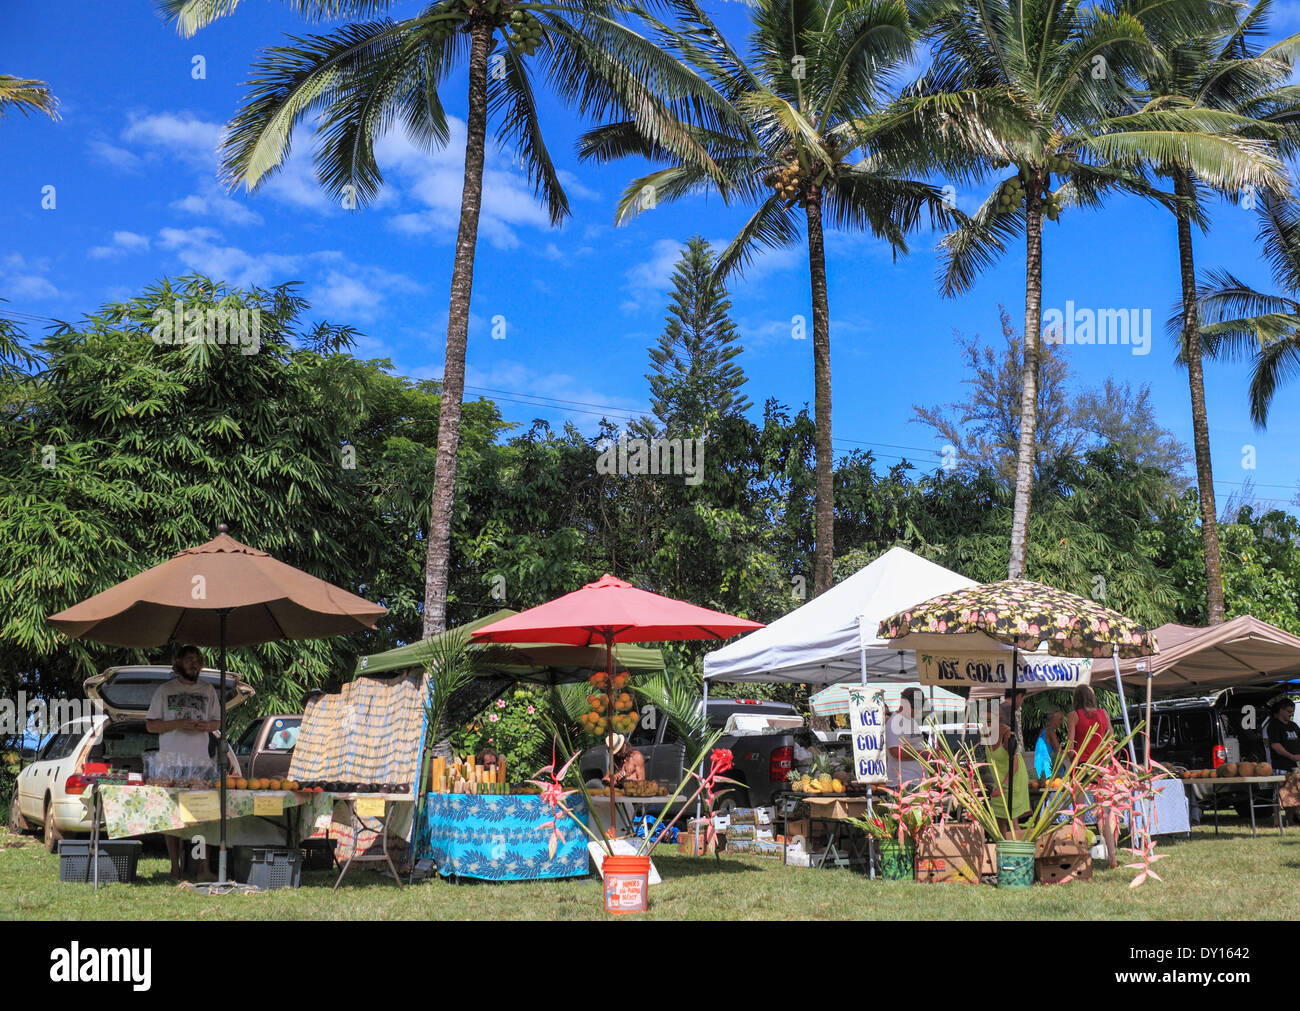 The Waipa Farmers Market on Kauai Stock Photo